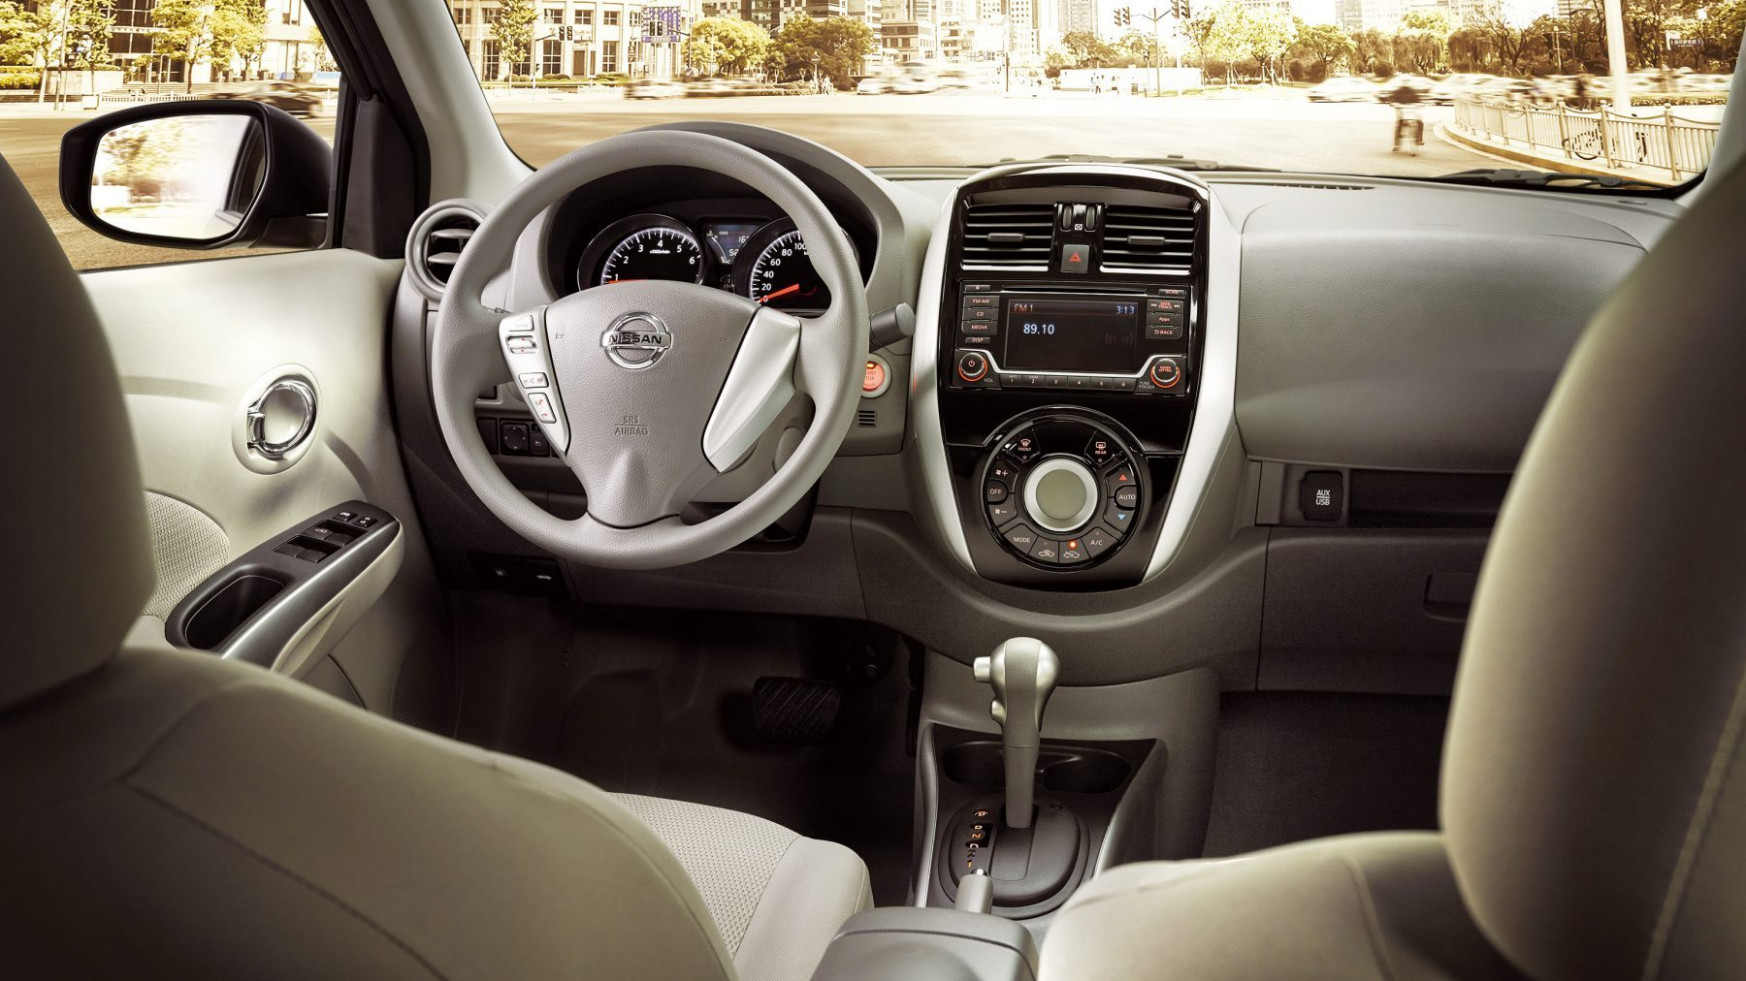 Review 2022 Nissan Sunny Uae Egypt